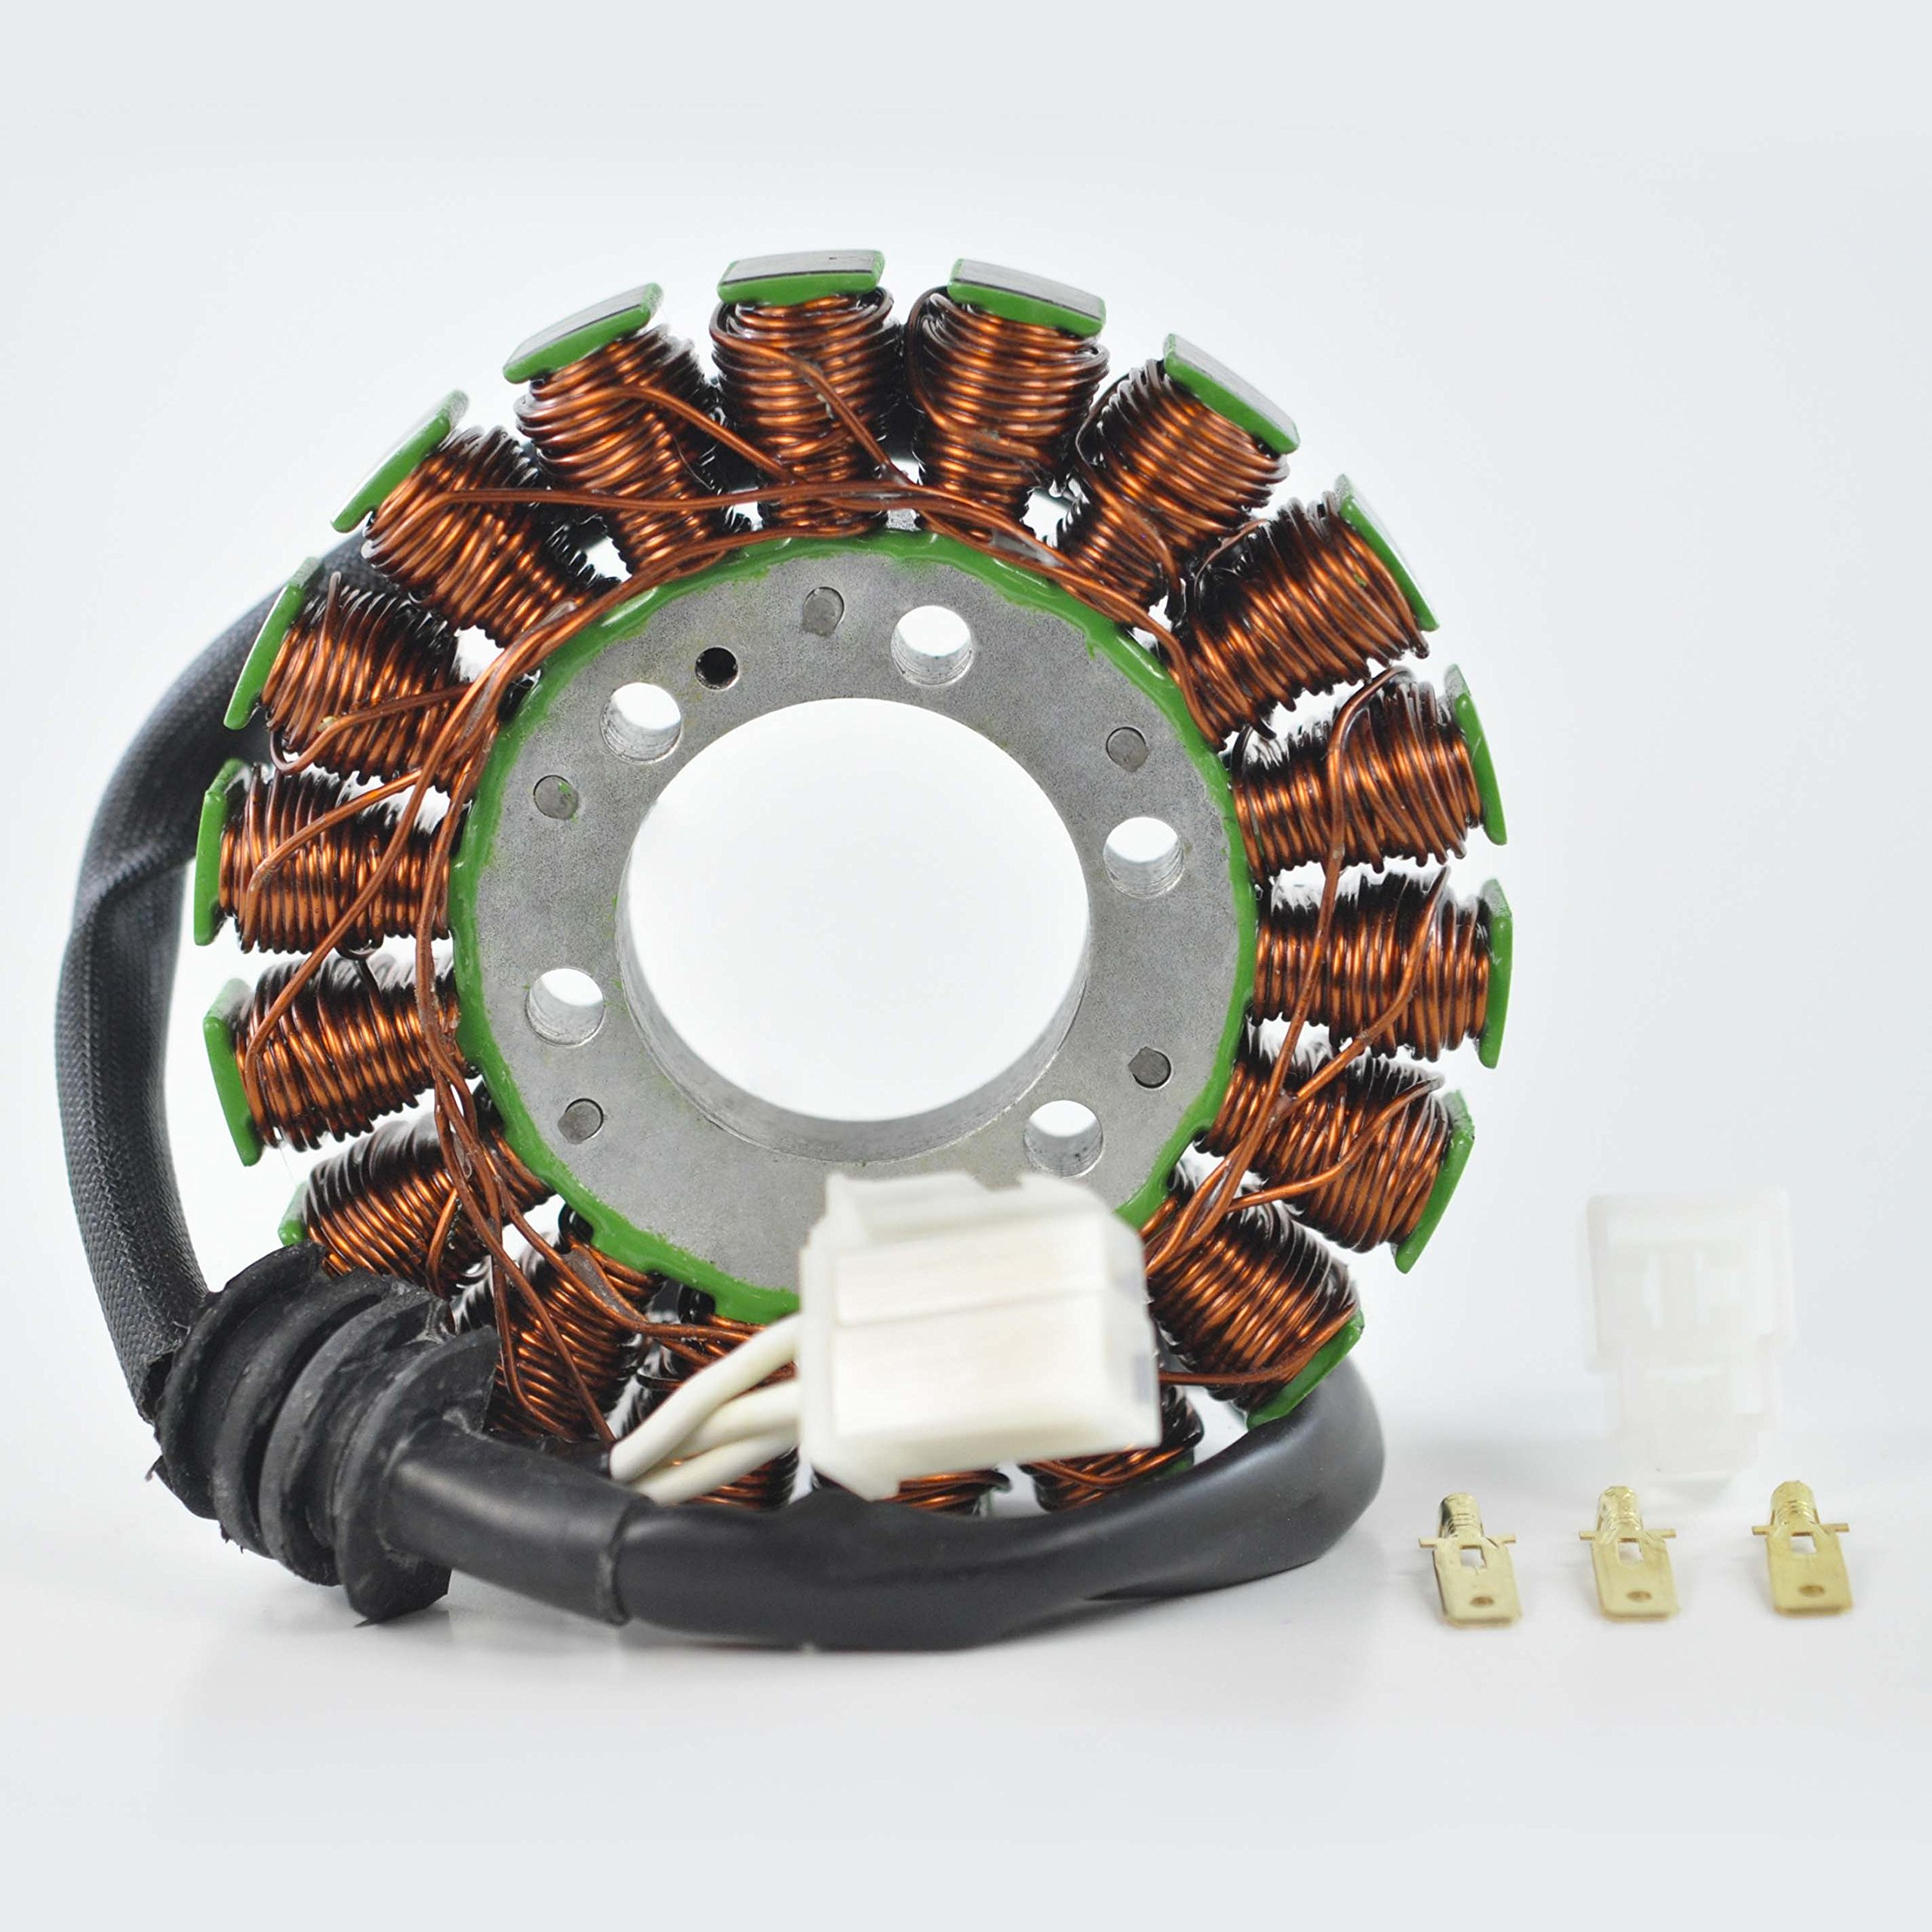 Stator For Yamaha YZF R6 R6S 2003 2004 2005 2006 2007 2008 2009 OEM Repl.# 5SL-81410-00-00 by RMSTATOR